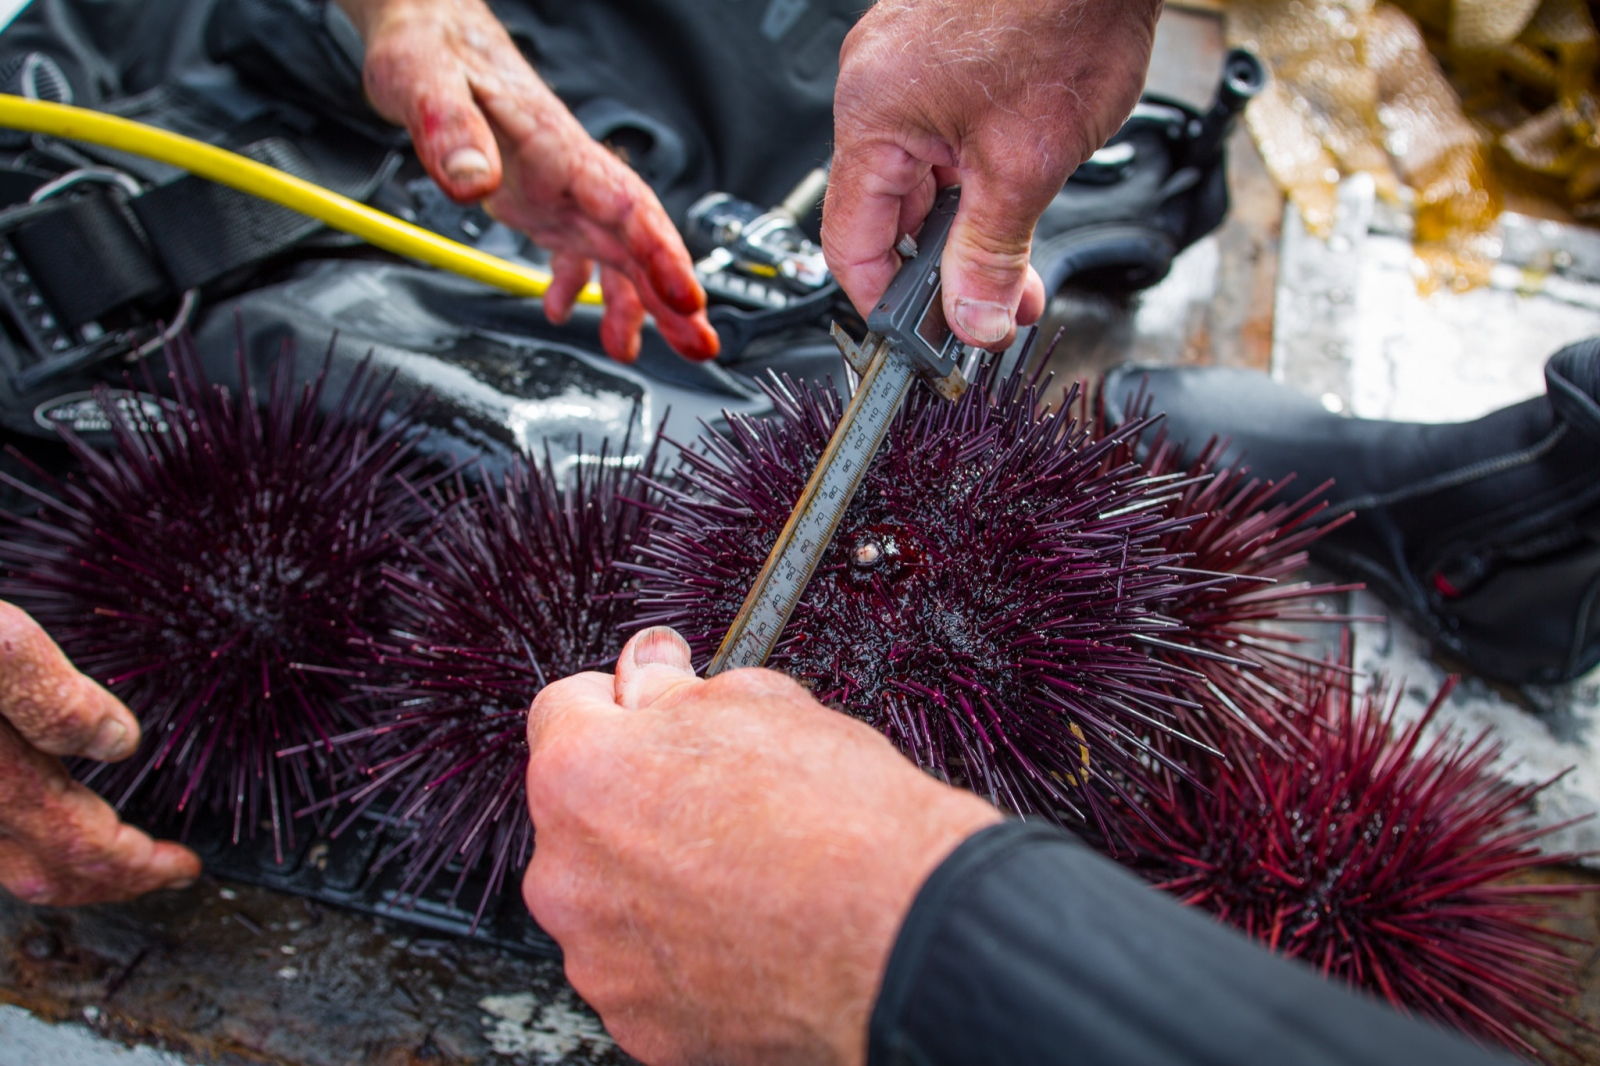 Sea urchin divers in San Diego voluntarily documenting their catch, gathering baseline population data in preparations for future regulations. From a personal project on new models in fisheries management.